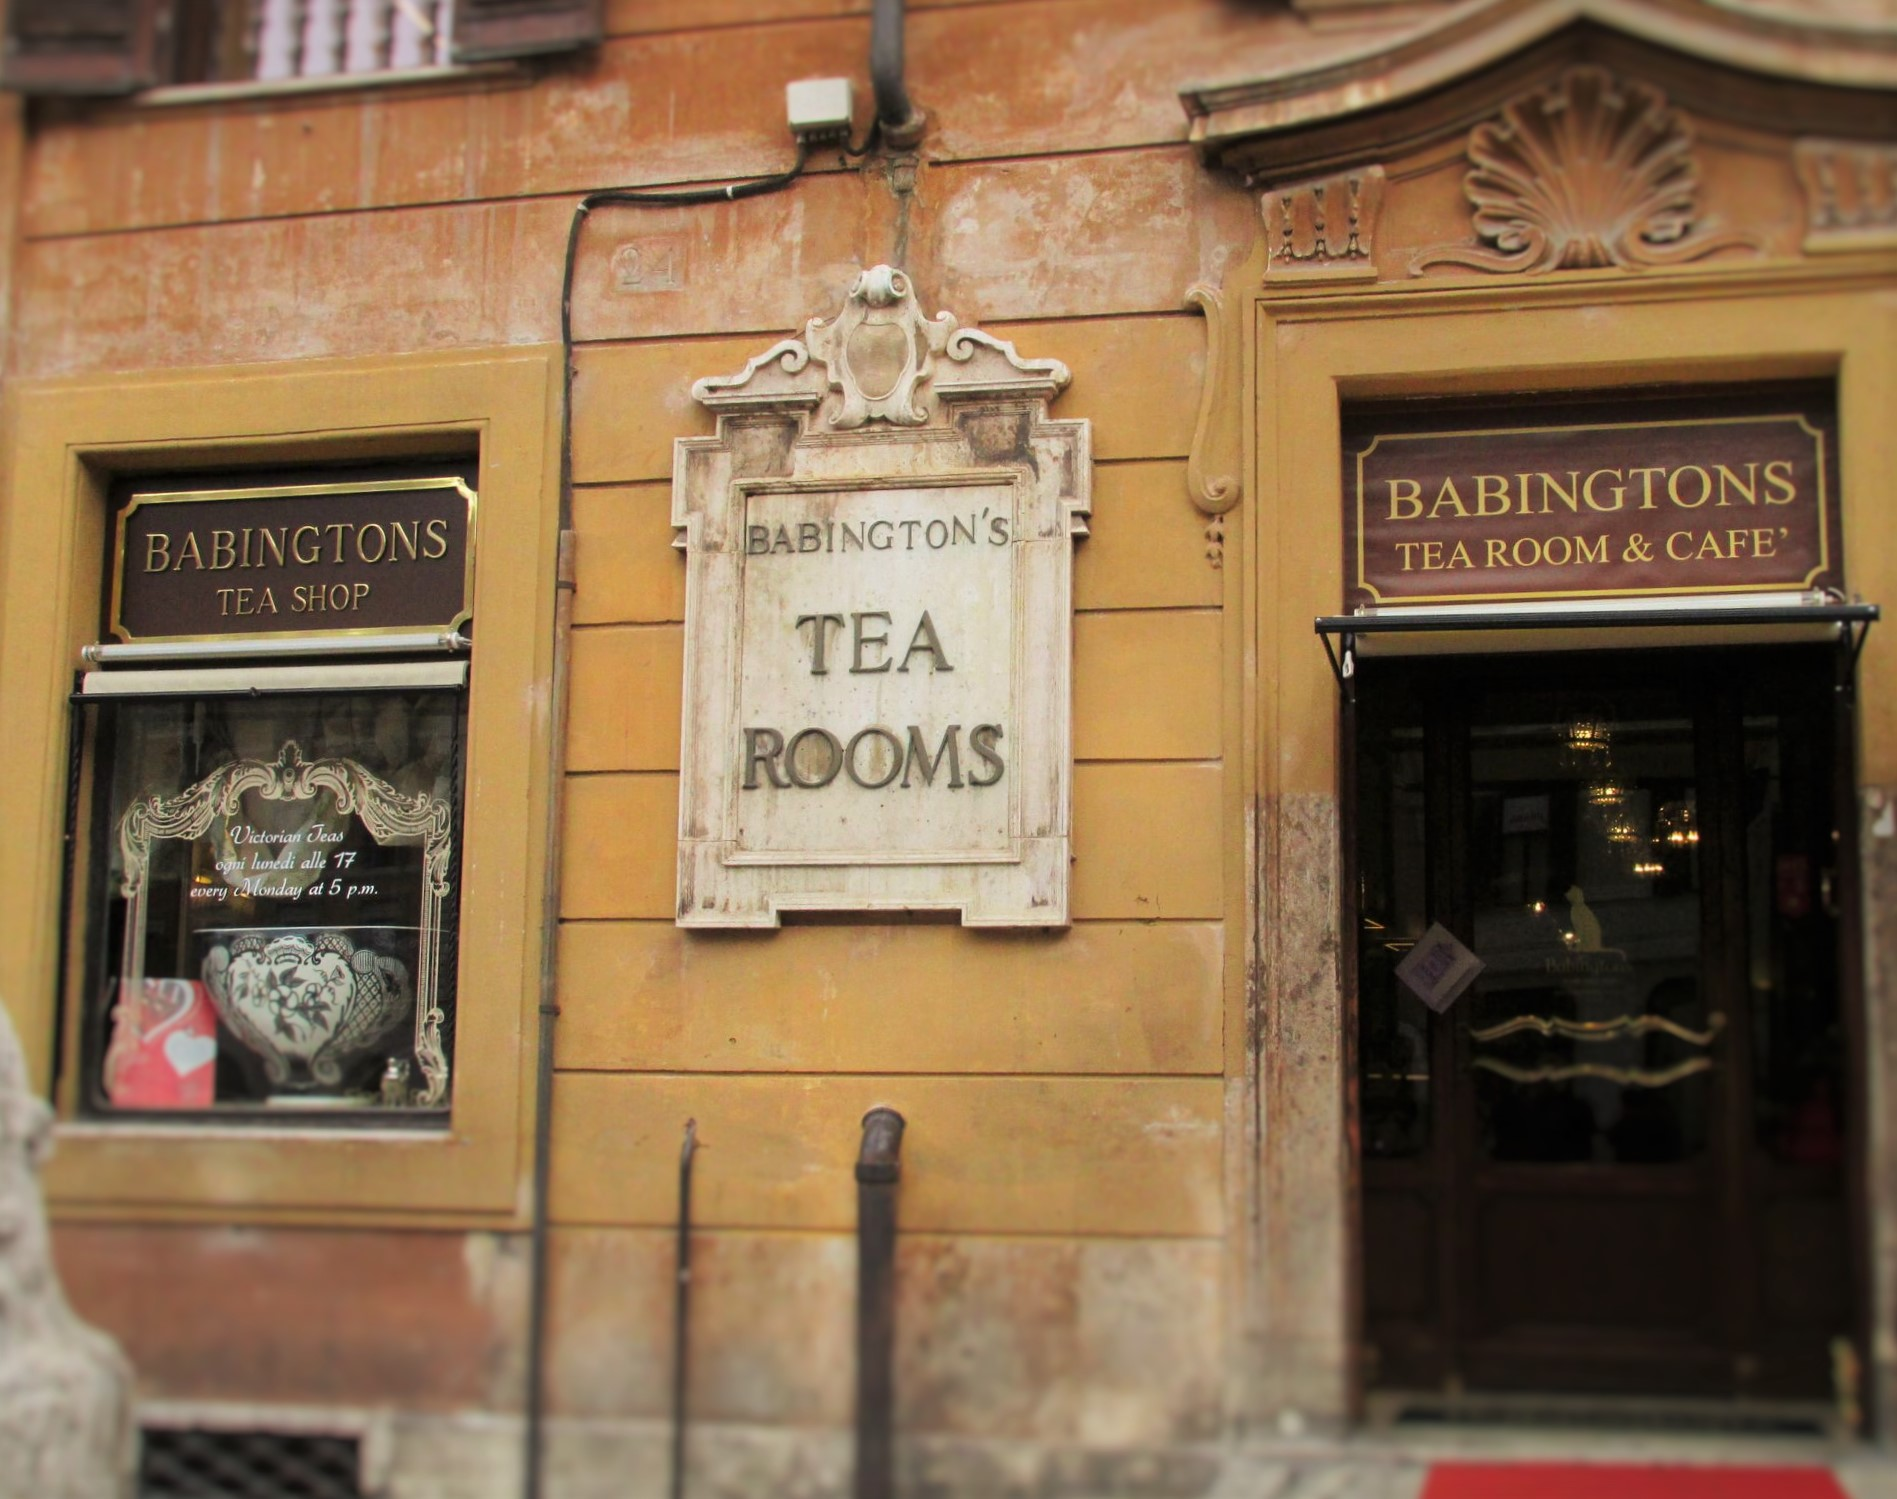 Babington's Tea Rooms at the bottom of the Spanish Steps in Rome. Photo credit: M. Ciavardini